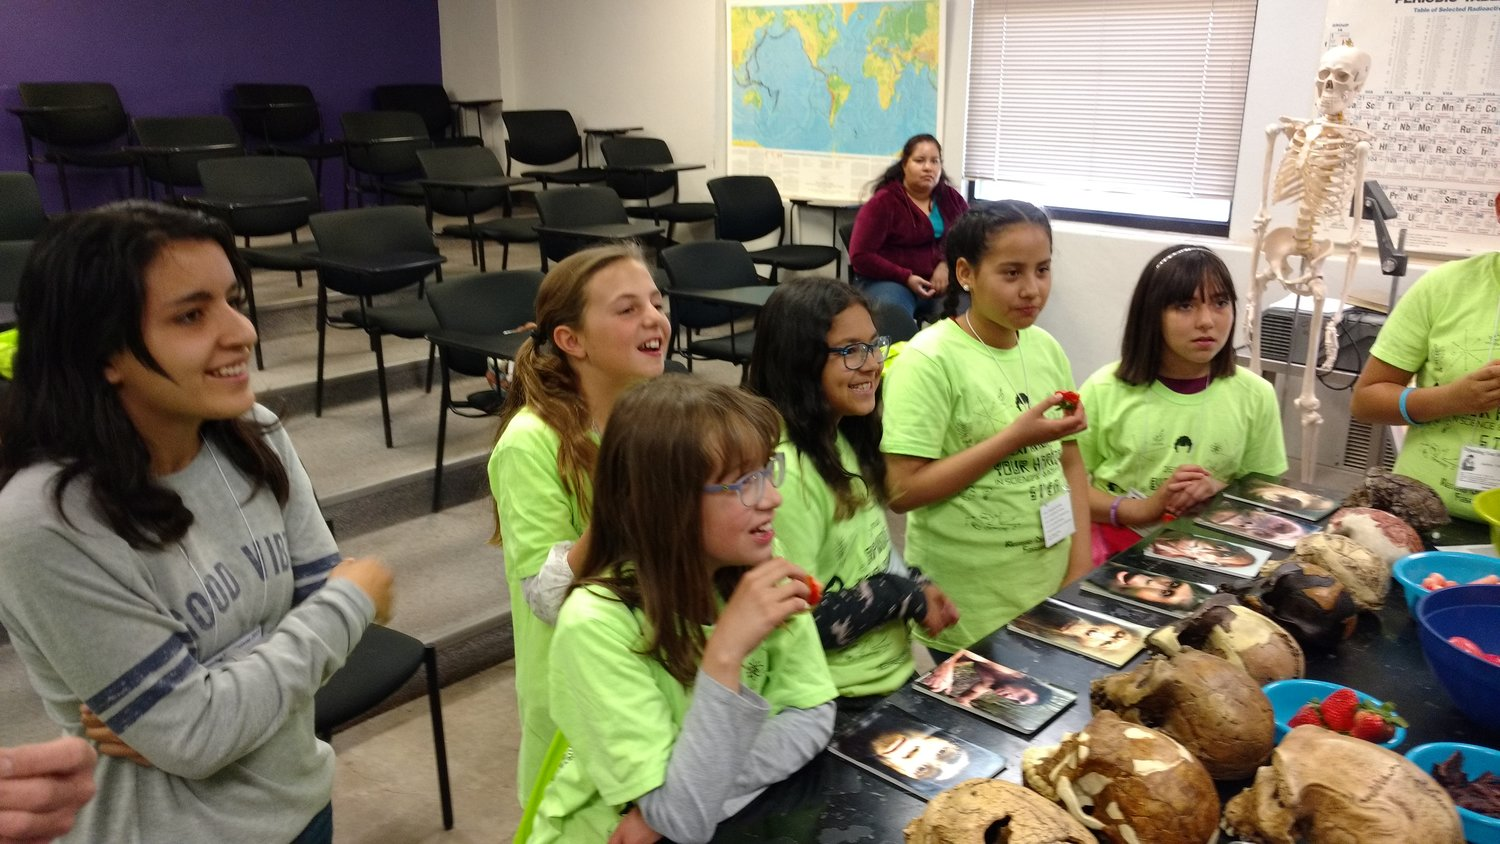 Professor Manda Clair Jost's anthropology workshop is always popular. In this photo, students eat different foods to learn about how human teeth, jaw bones, and jaw muscles evolved.